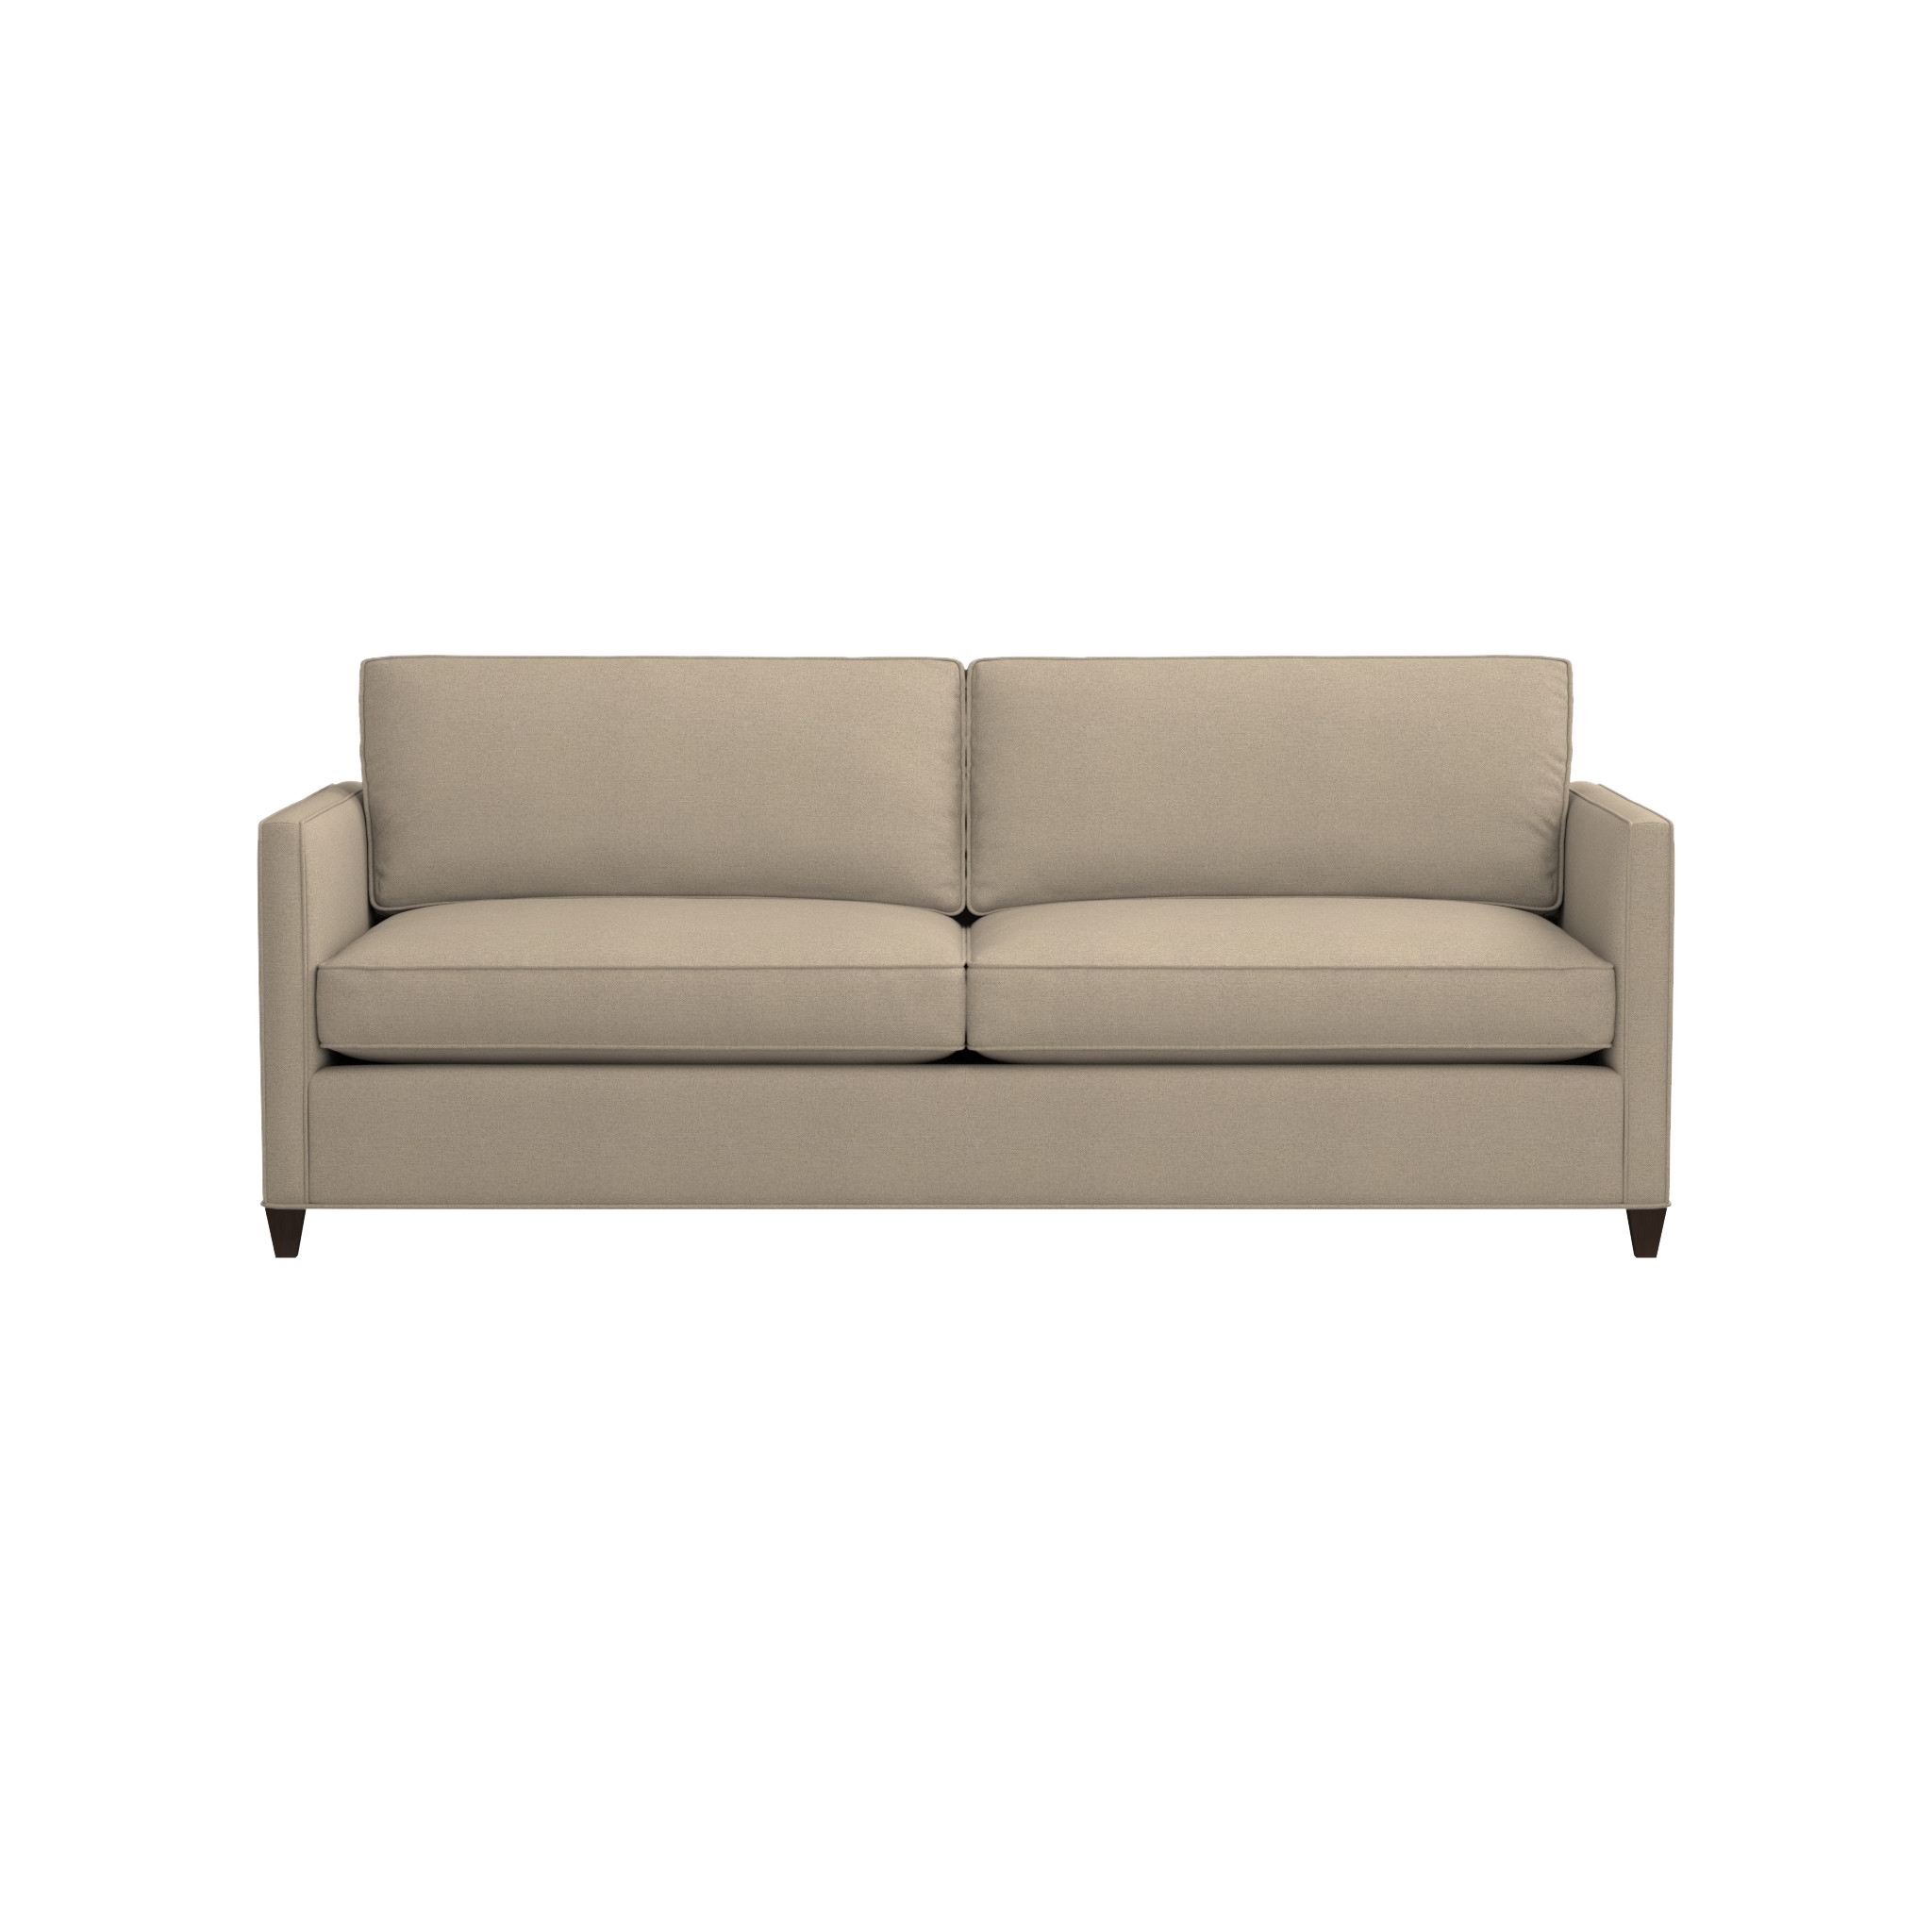 crate and barrel sofa sleeper review lazy boy reclining slipcovers 20 collection of sofas ideas